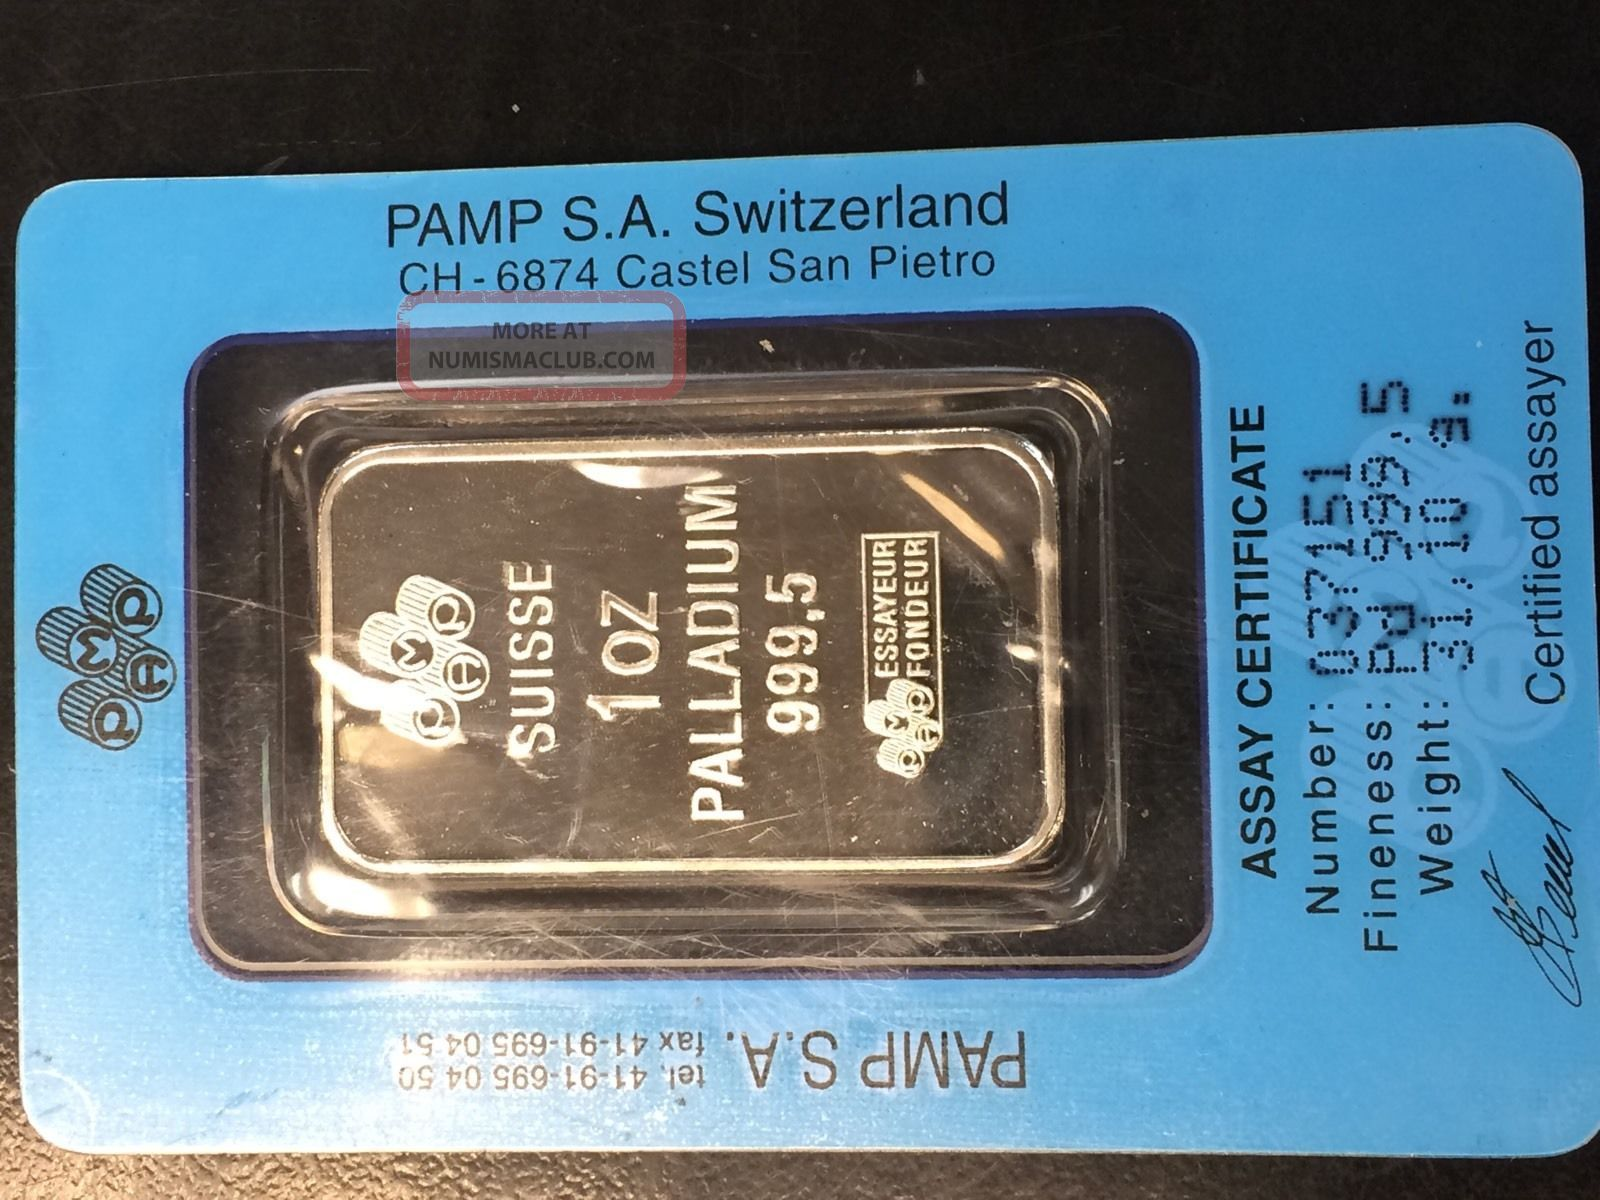 pamp suisse essayeur fondeur 1 oz credit suisse palladium bar is there are no more esteemed names in the palladium market than credit suisse and pamp credit suisse palladium bars are and the number 9995 printed below, as well as a small logo featuring the words essayeur fondeur category: palladium tags: credit.